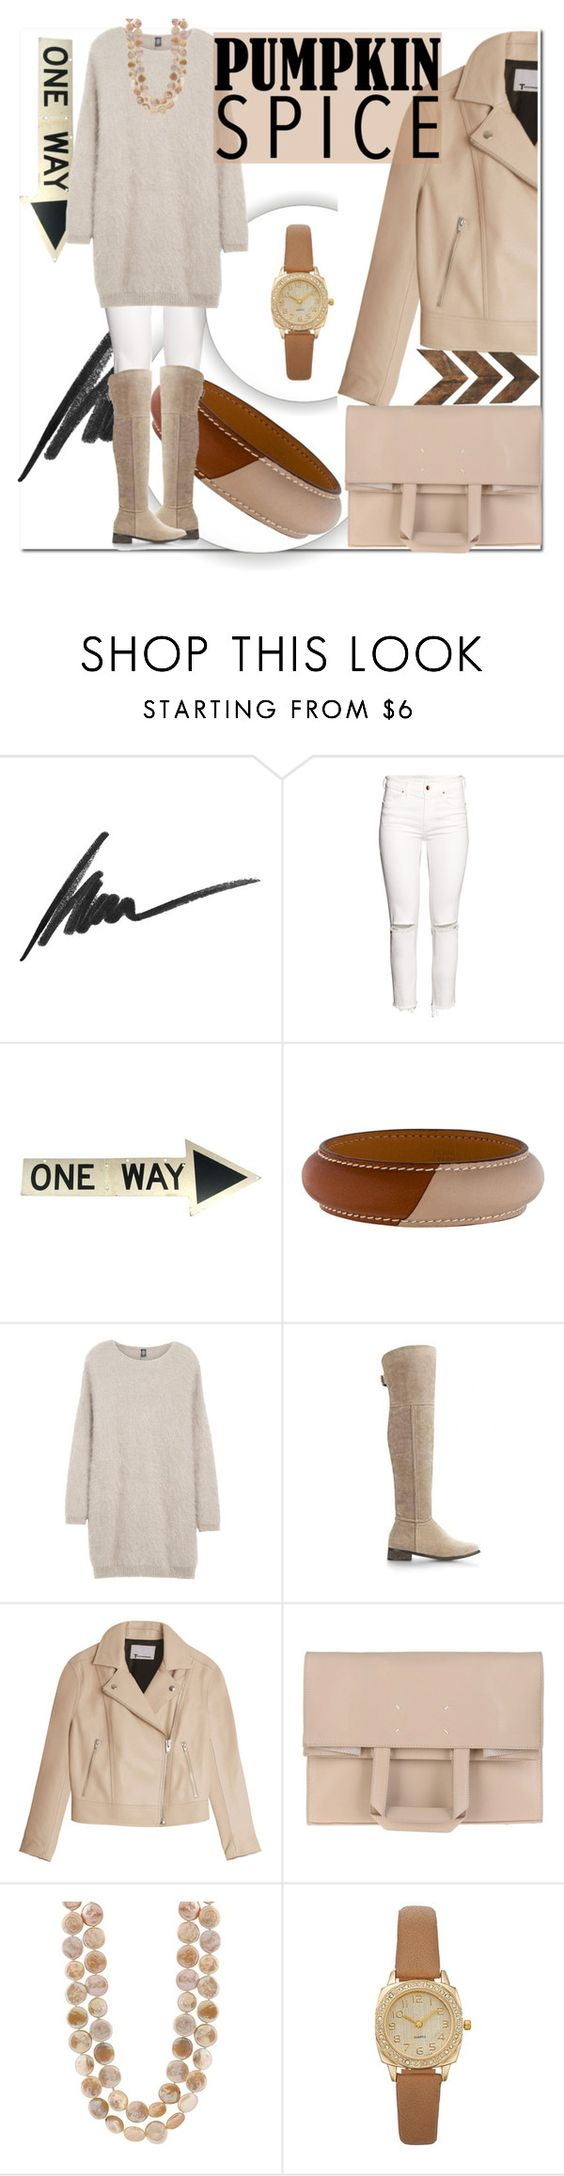 """Sans titre #521"" by sarabutterfly ❤ liked on Polyvore featuring Max Factor, H&M, Hermès, Eleventy, T By Alexander Wang, Maison Margiela and WALL"